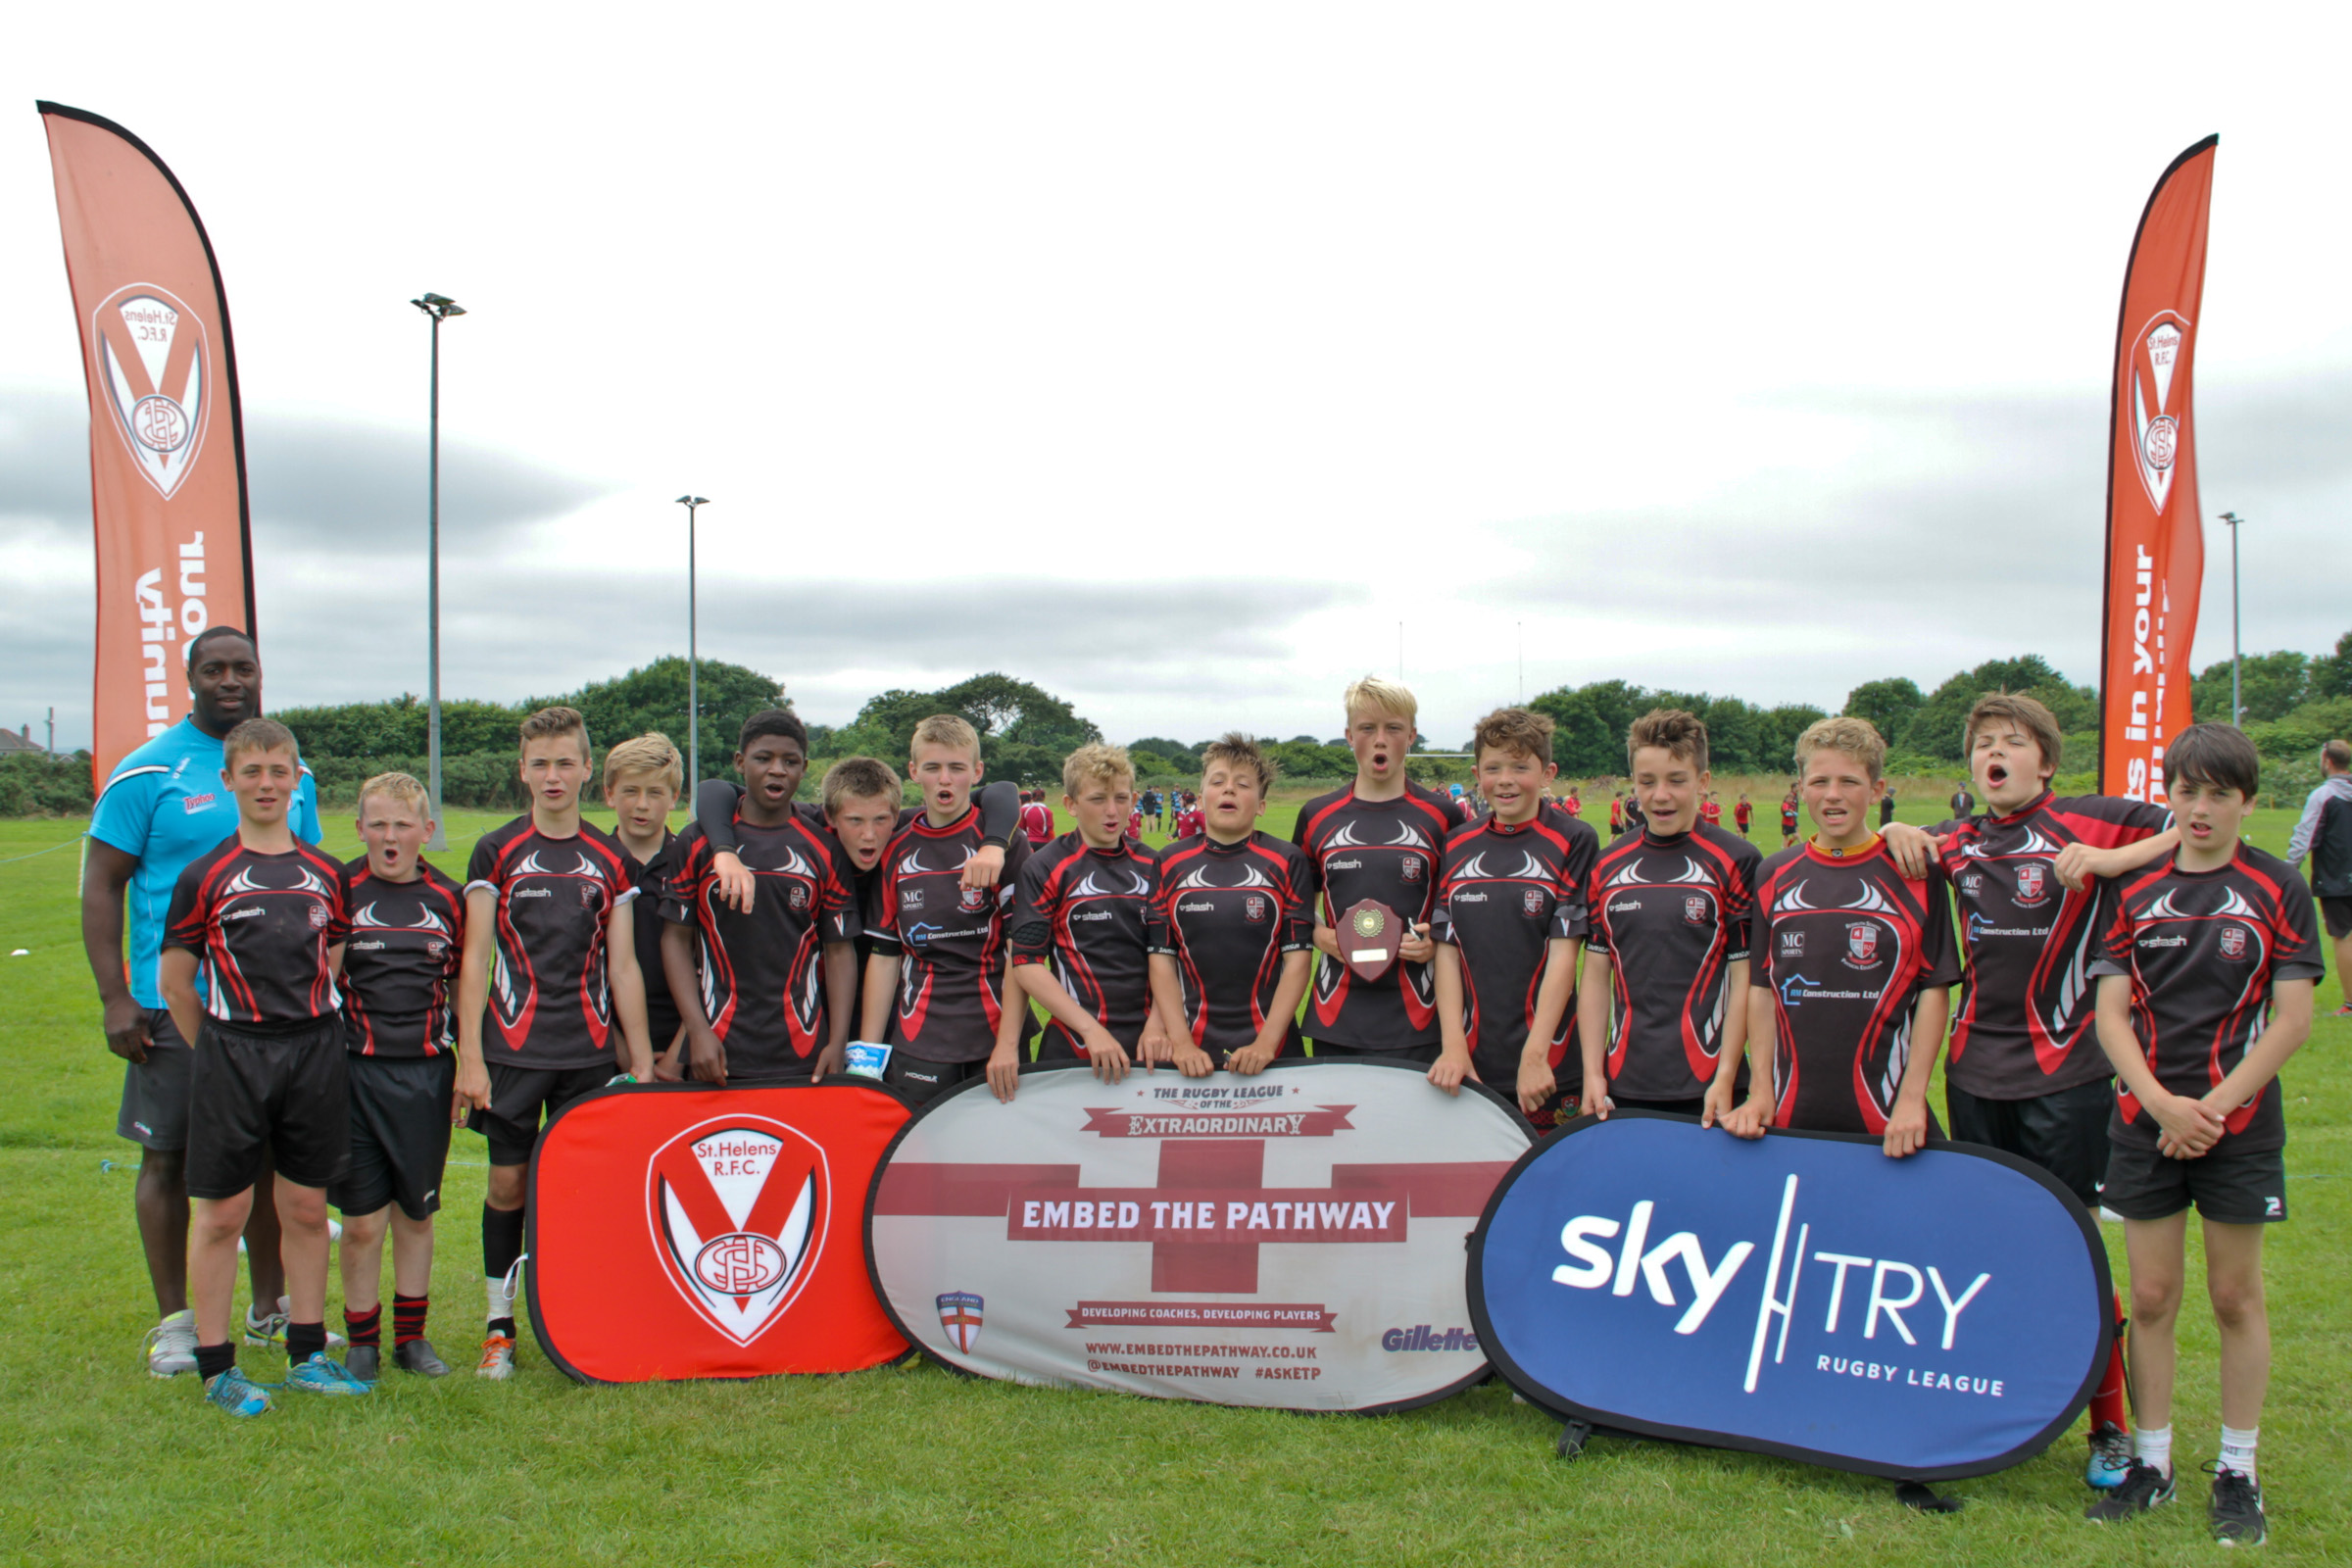 Redruth School - Shield Winners